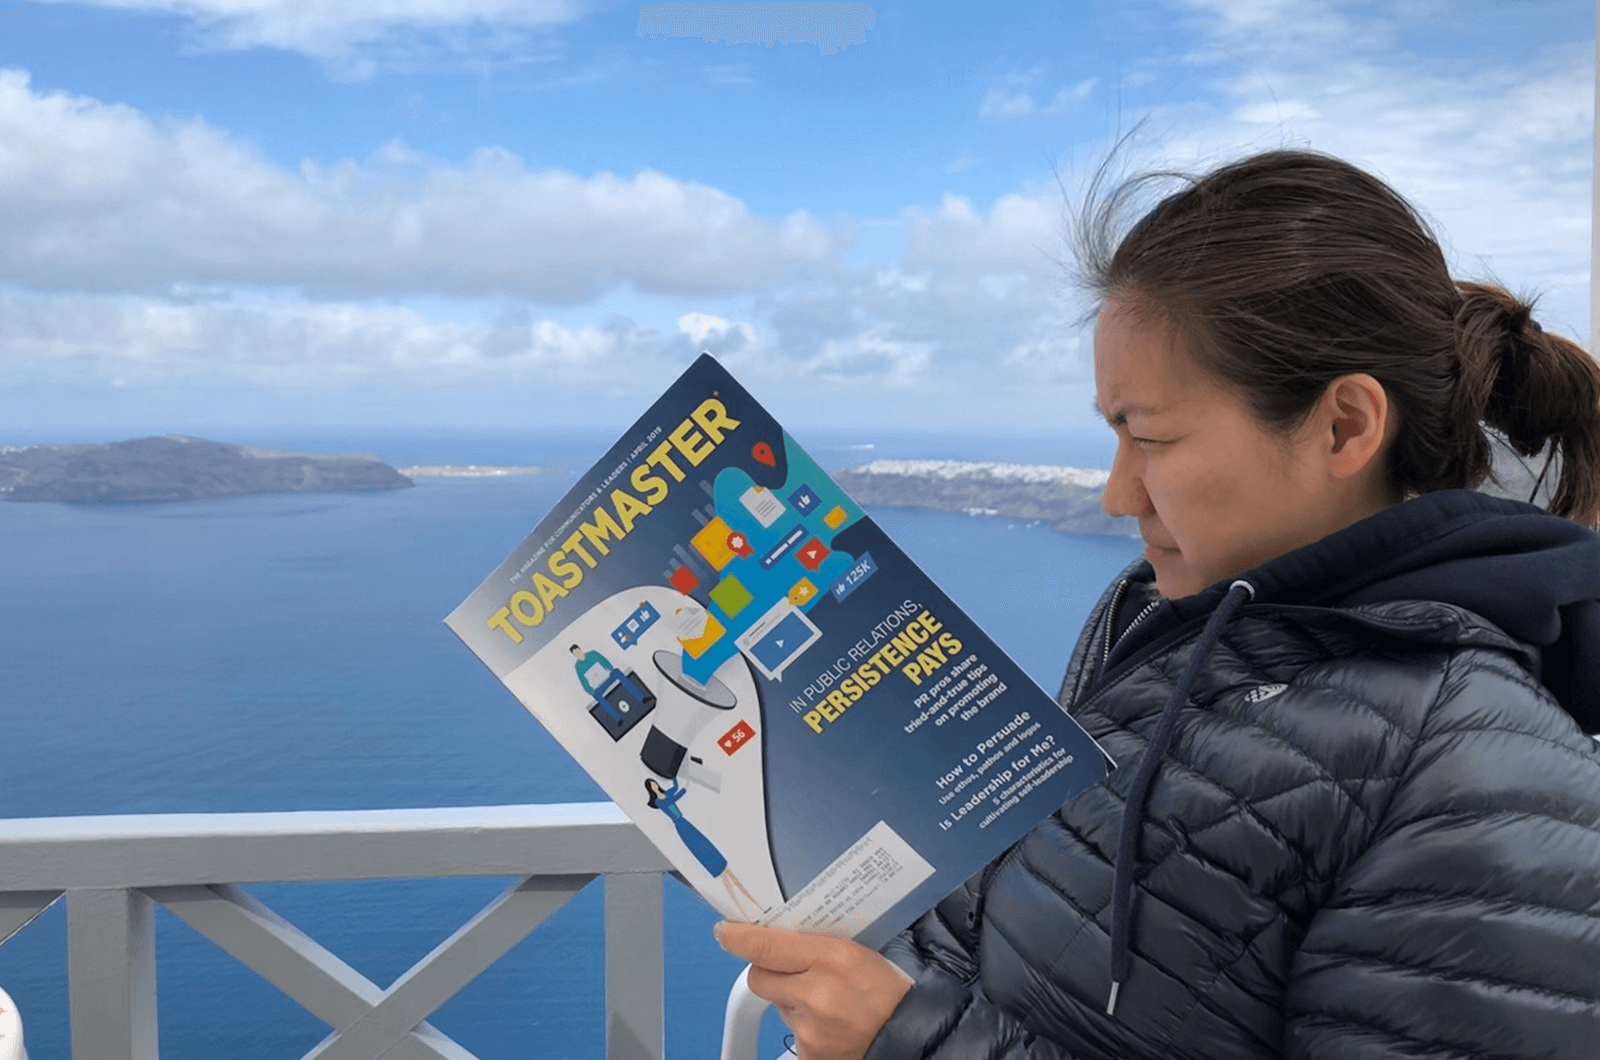 Lefan Zhuang of San Dimas, California, reads her Toastmaster magazine on the balcony of her hotel in Imerovigli, Greece. The white buildings in the background are part of the city of Oia.